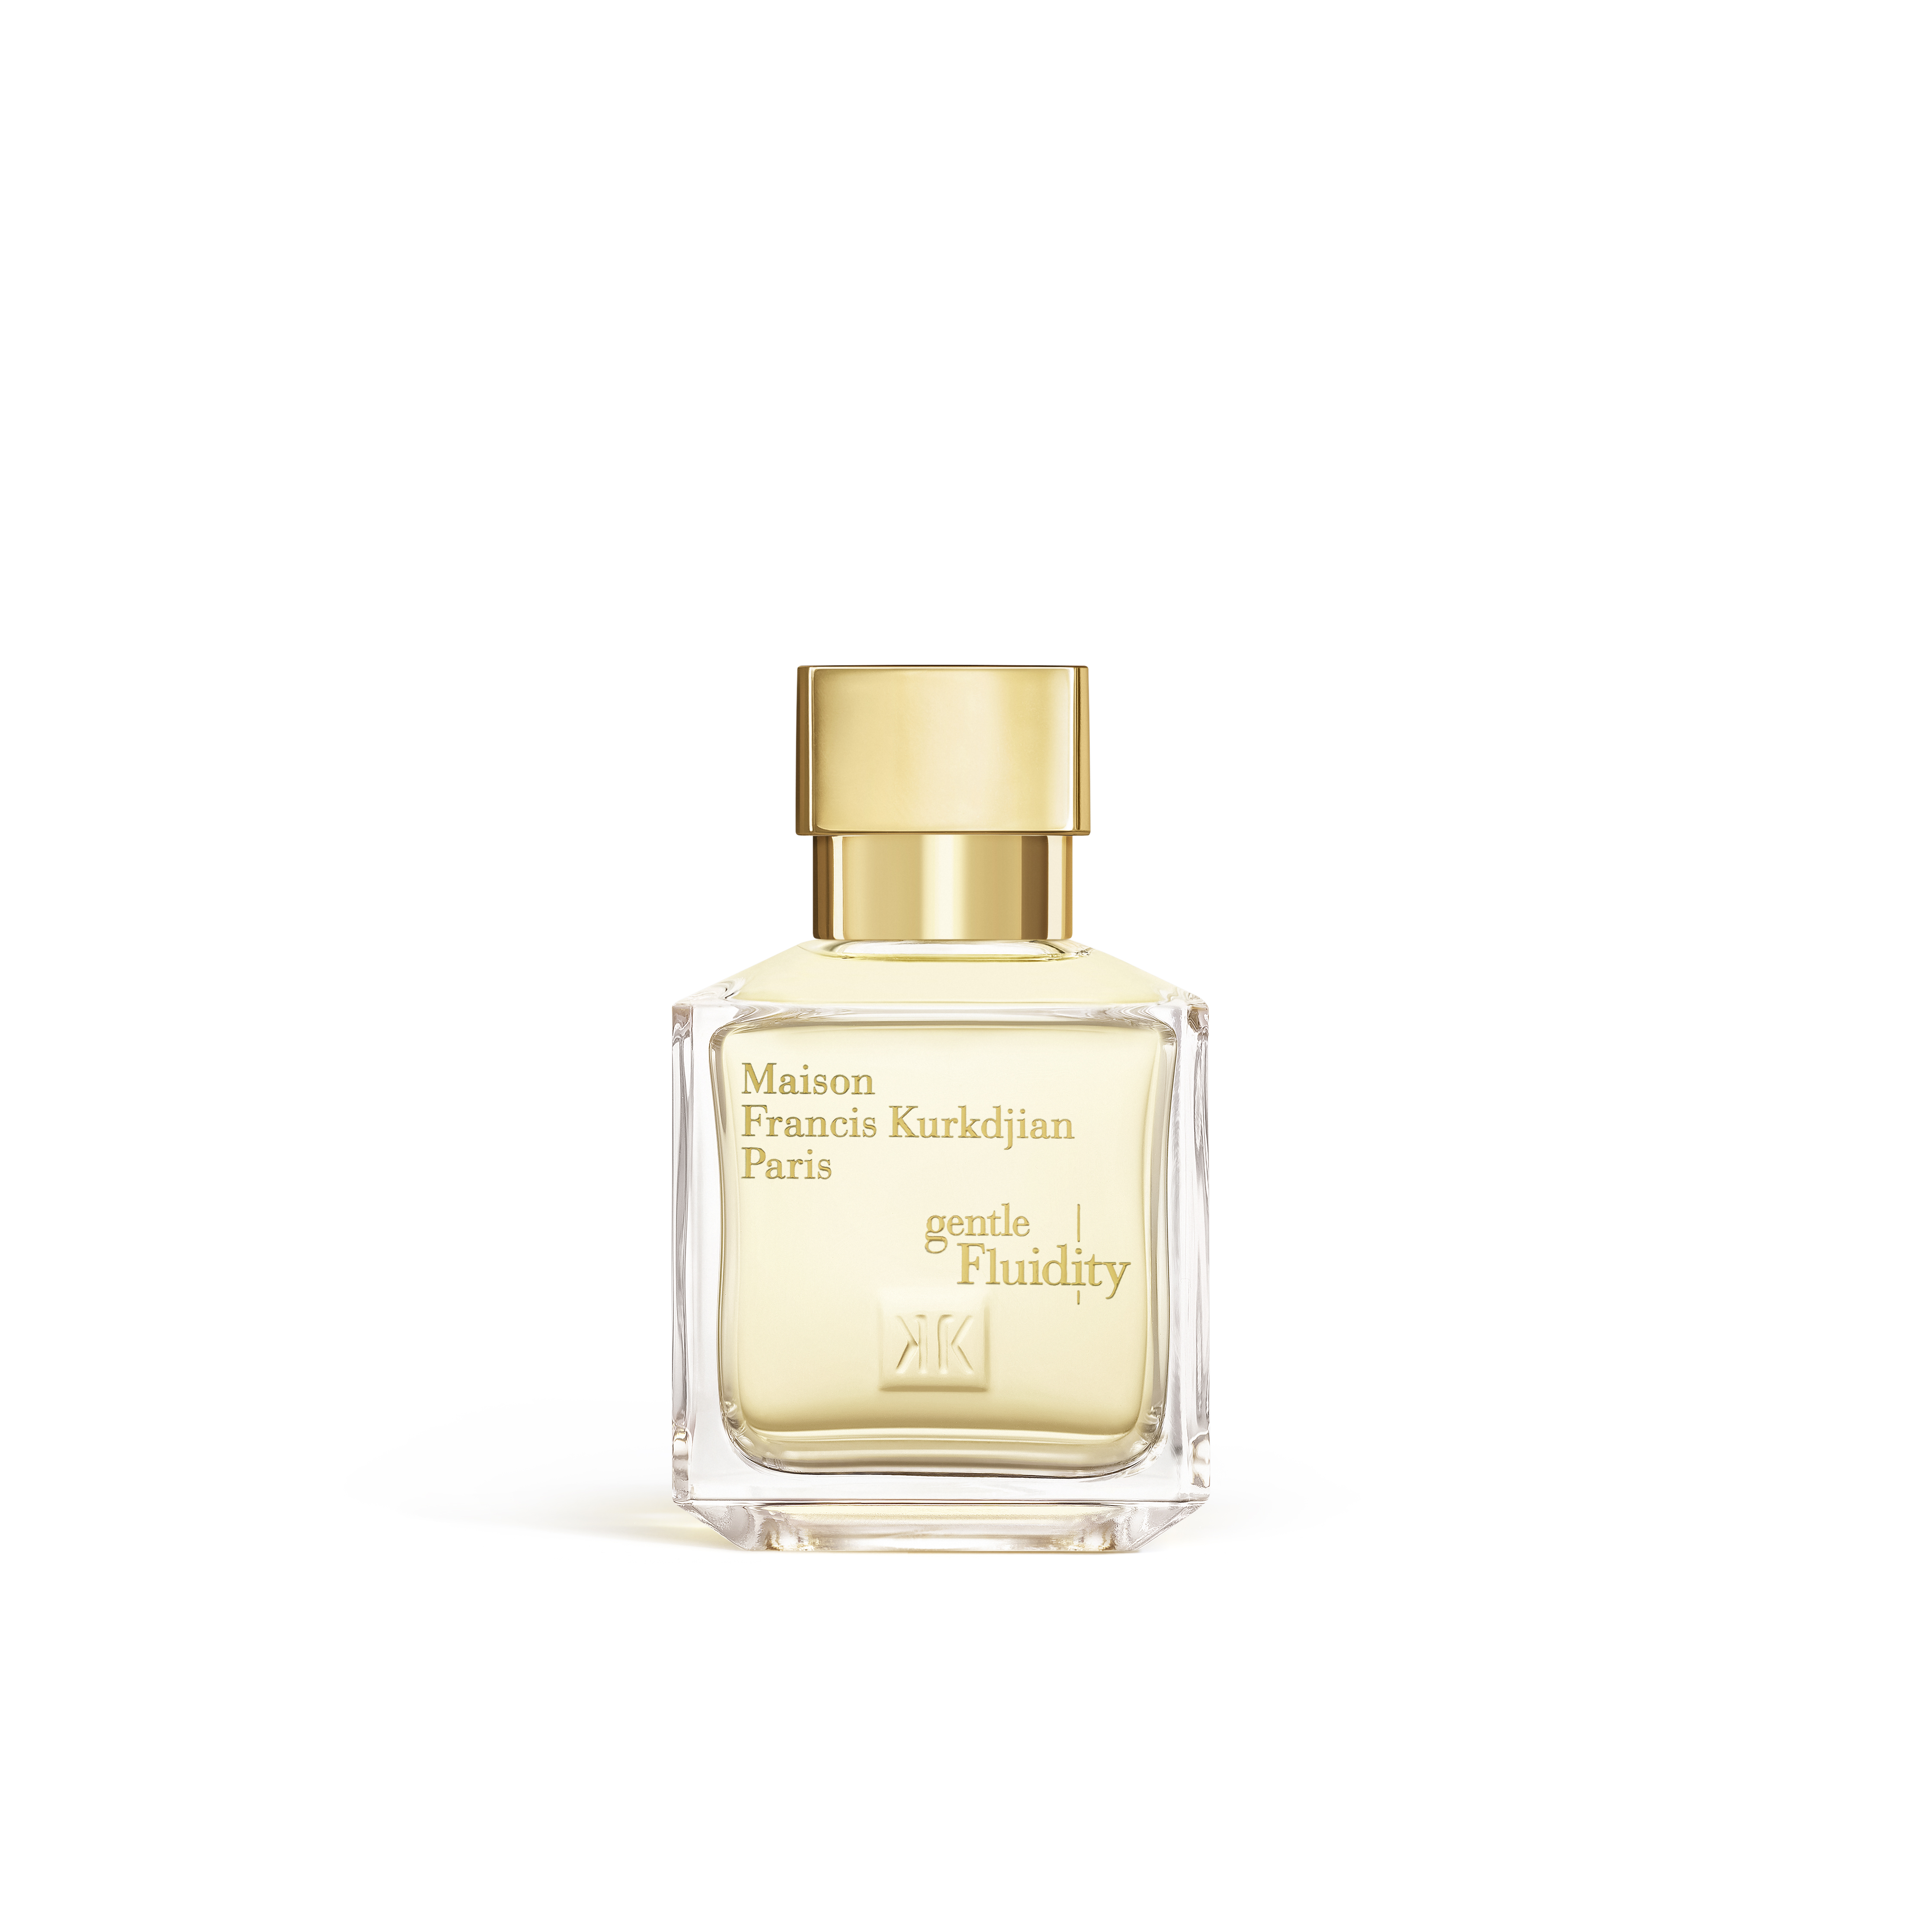 Maison Francis Kurkdjian Gentle Fluidity, Best cologne for Father's Day.